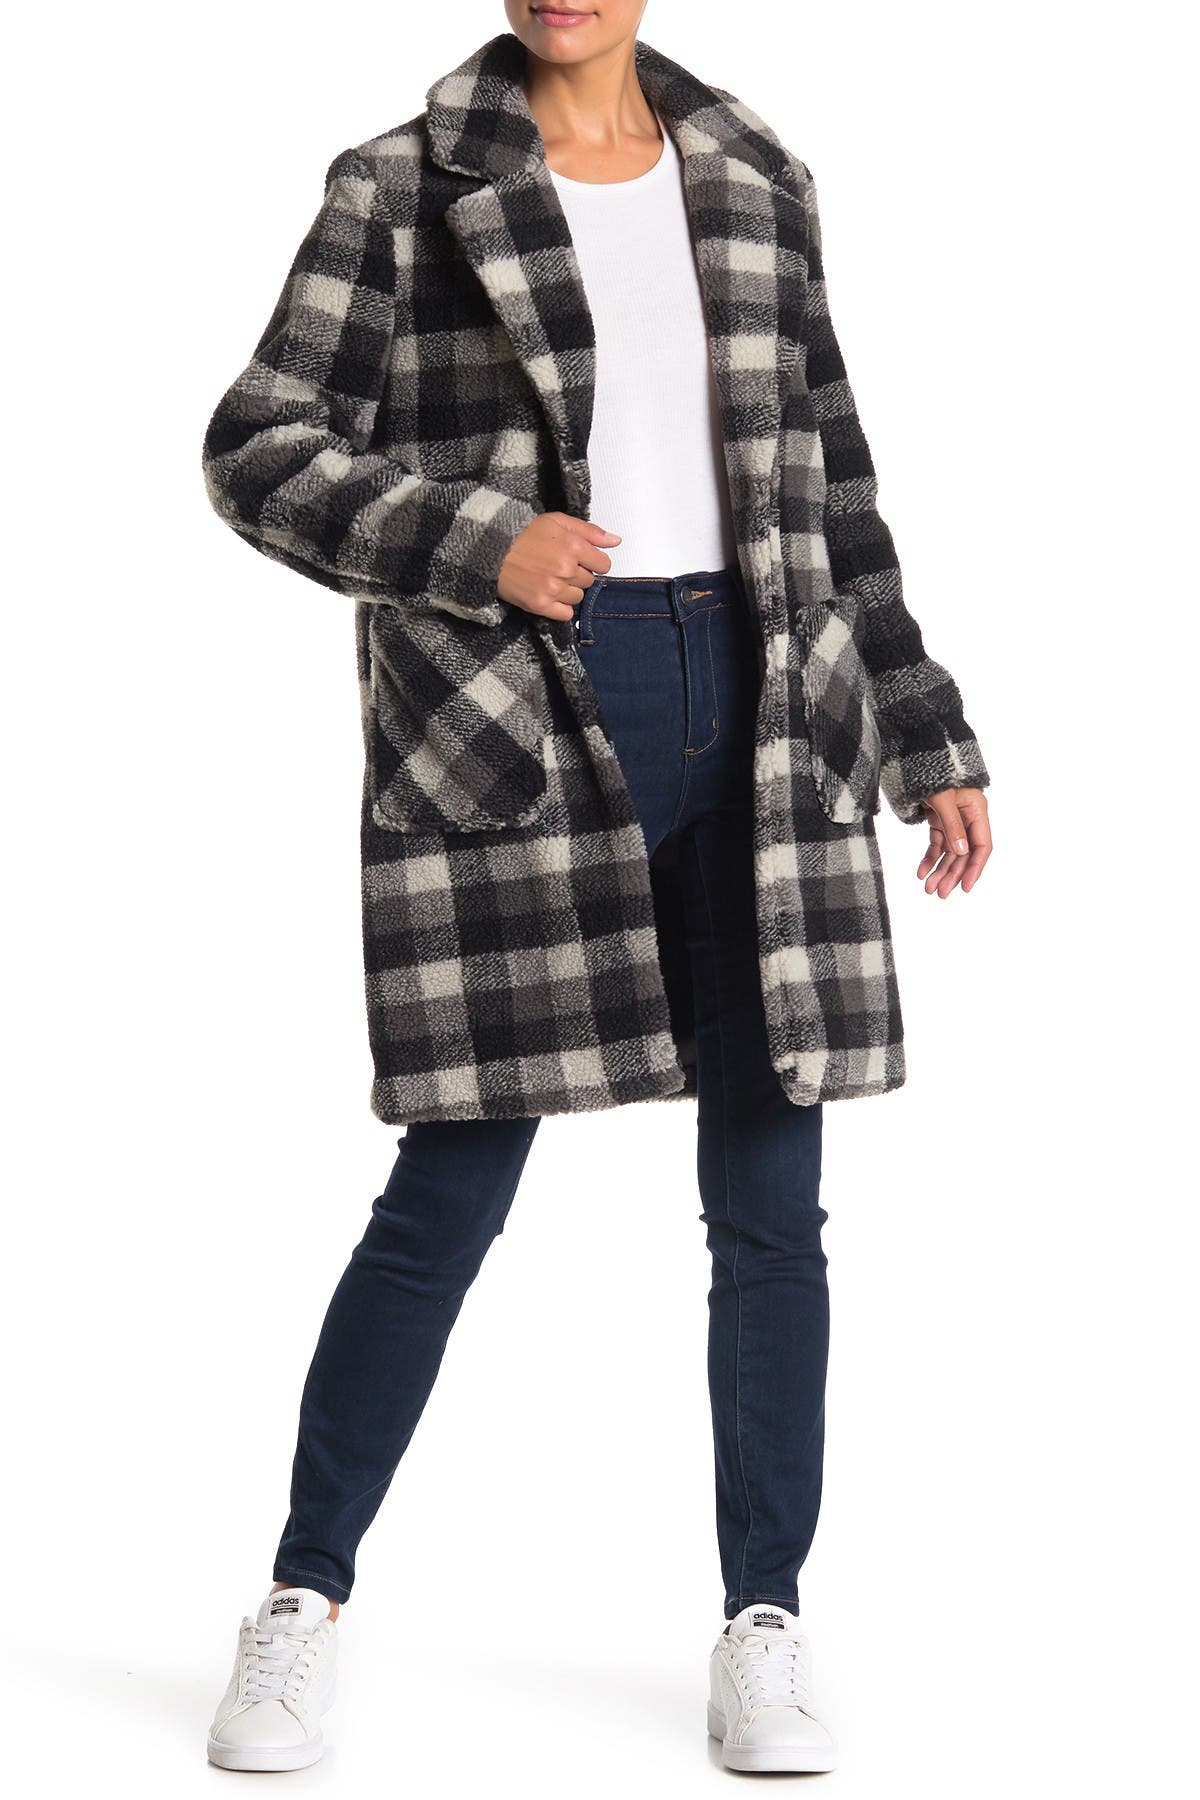 Image of French Connection Notch Collar Plaid Print Faux Fur Coat